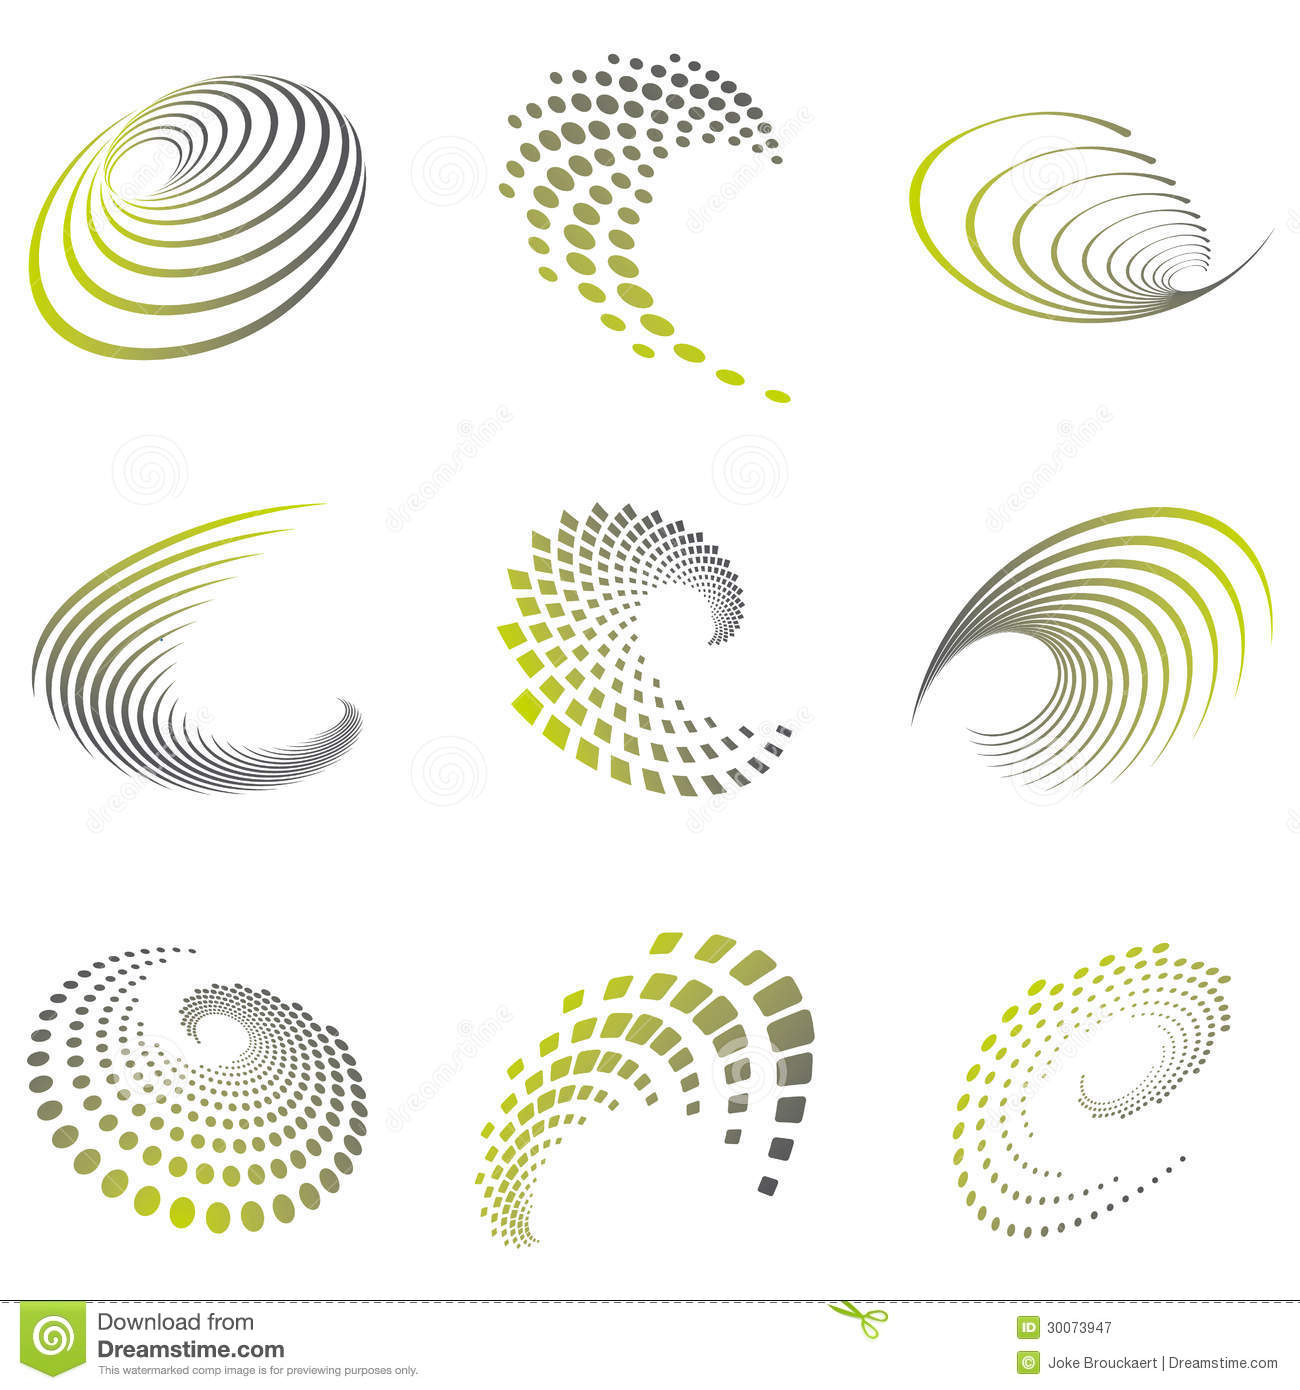 Royalty Free Stock Photography Set Nine Abstract Wave Icons Geometric Shapes Grey Green Shades Can Be Used Party Business Technology Sports Motion Promotion Etc Image30073947 on Green Spiral Symbol